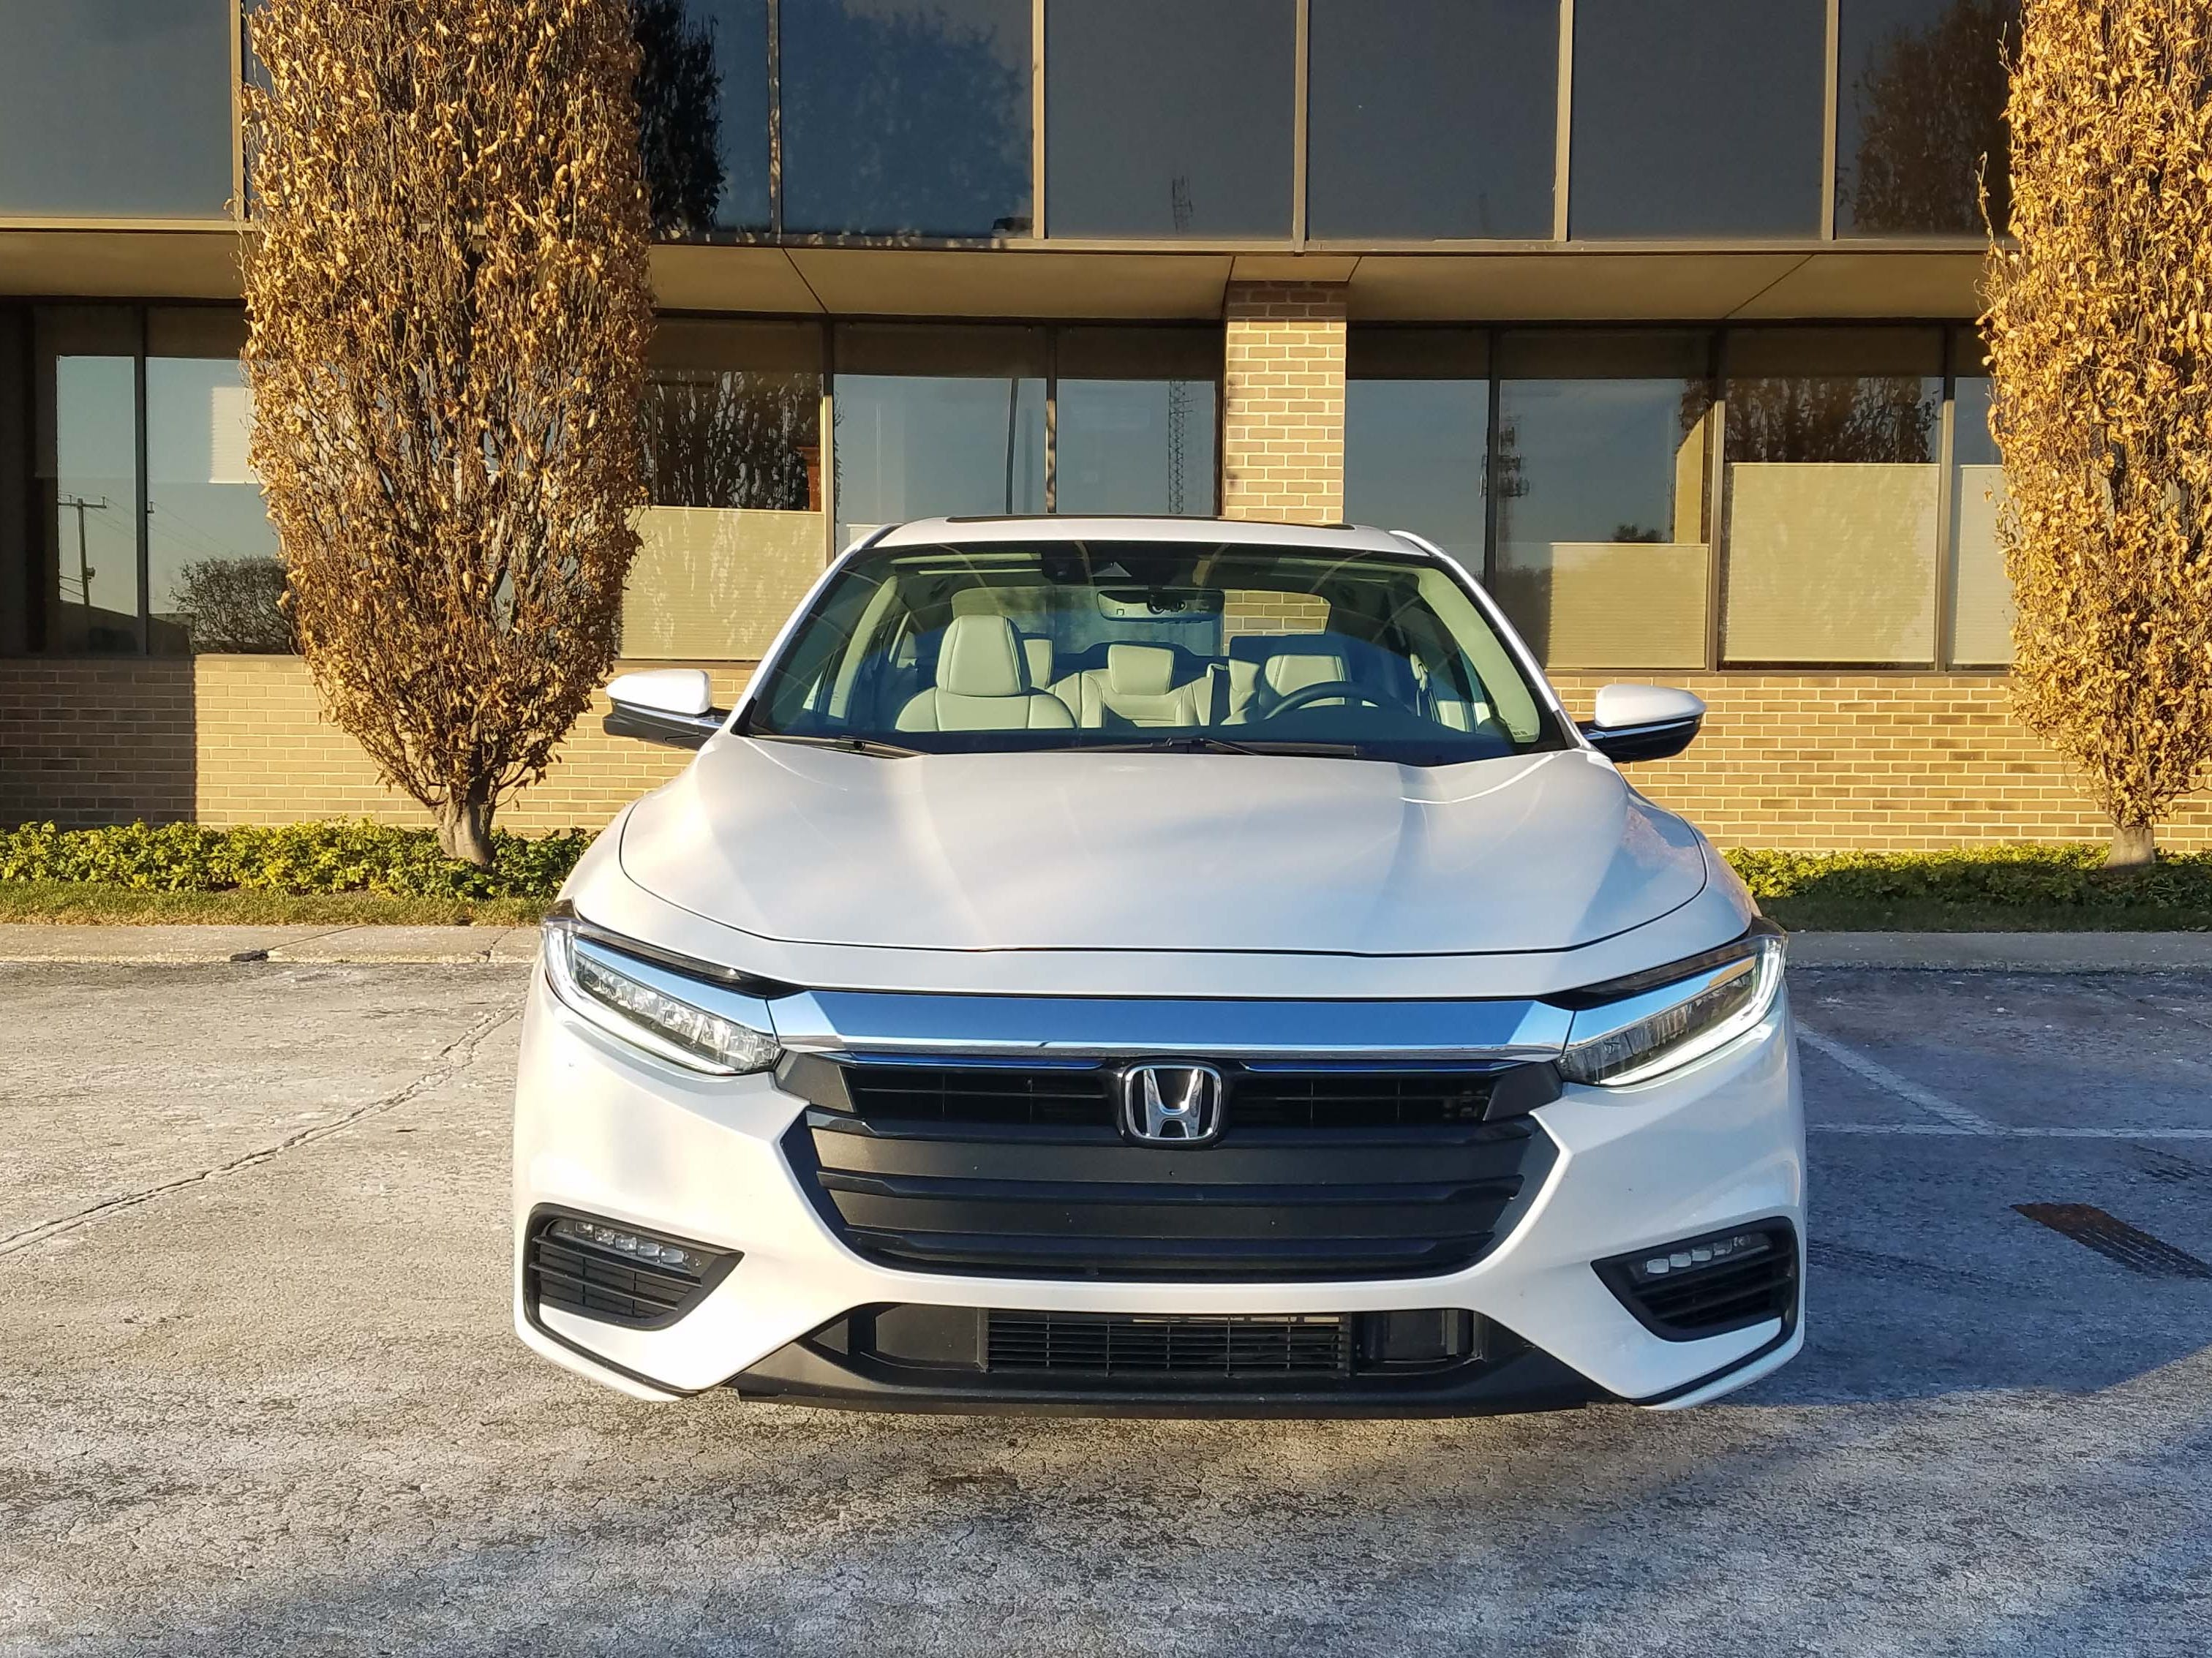 The 2019 Honda Insight hybrid offers a mature, handsome face that is more Acura in its design than Honda.